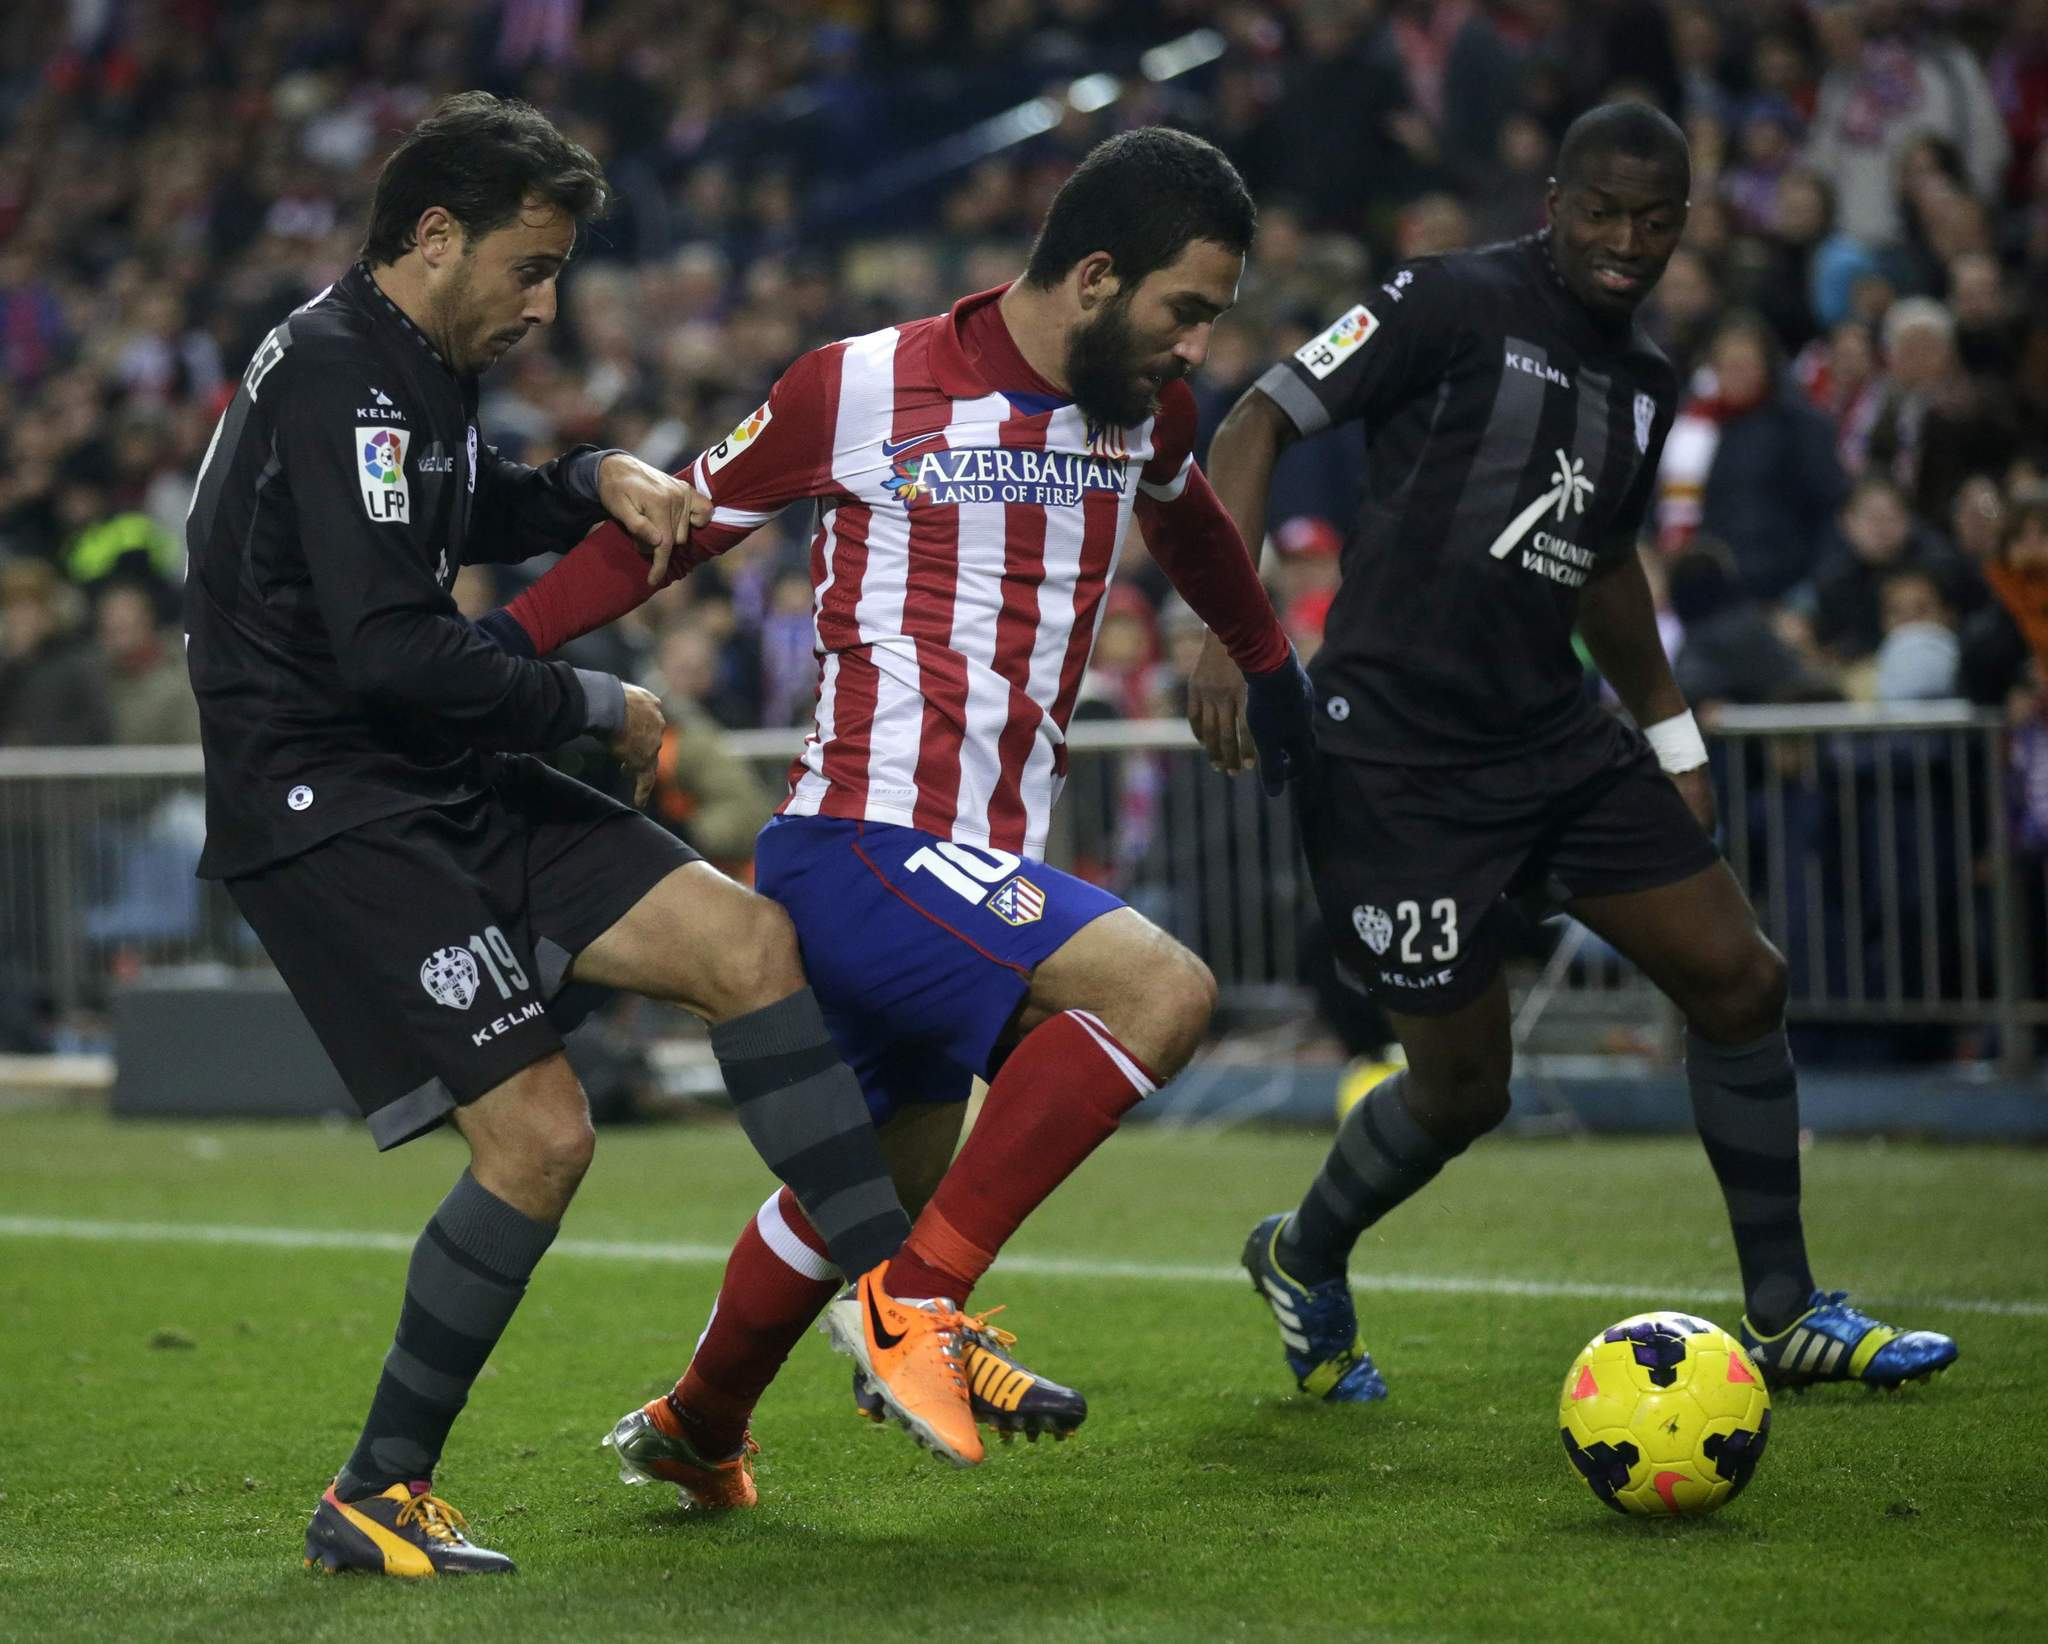 Atletico Madrid's Turan Arda (C) controls the ball between Levante's Pedro Lopez (L) and Papa Diop during their Spanish first division soccer match at Vicente Calderon stadium in Madrid December 21, 2013.